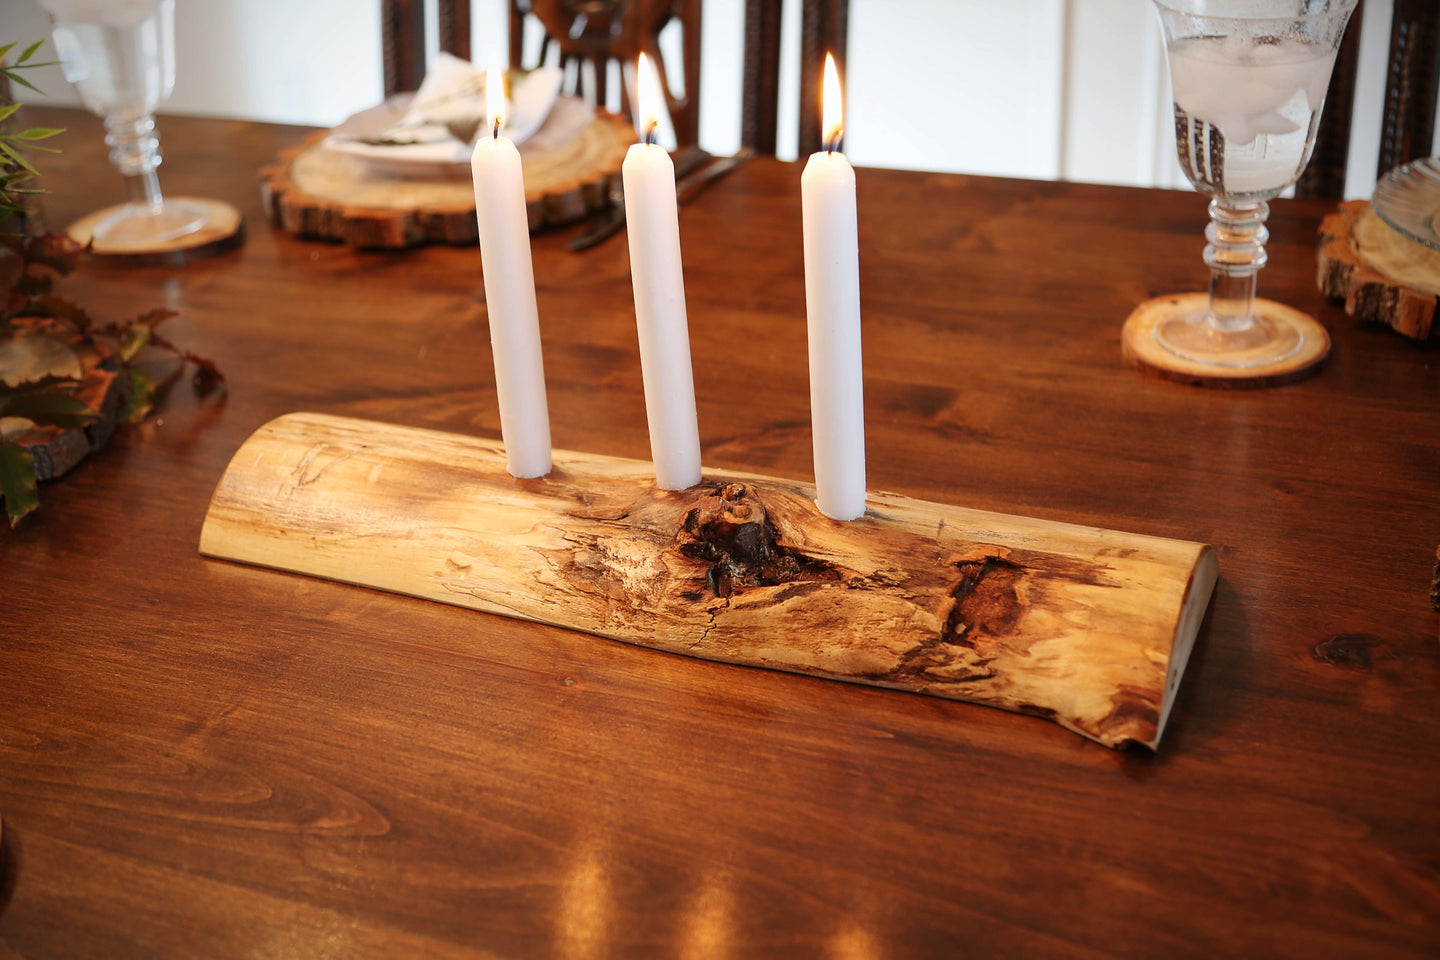 Gorgeous handcrafted solid wood modern live edge bark aspen quakie candle holder. Made in the U.S.A. these candle holders are very classy and elegant. Sure to be a conversation piece in any home or cabin. Use these chargers to place plates on to complete your dining, coffee or end table.